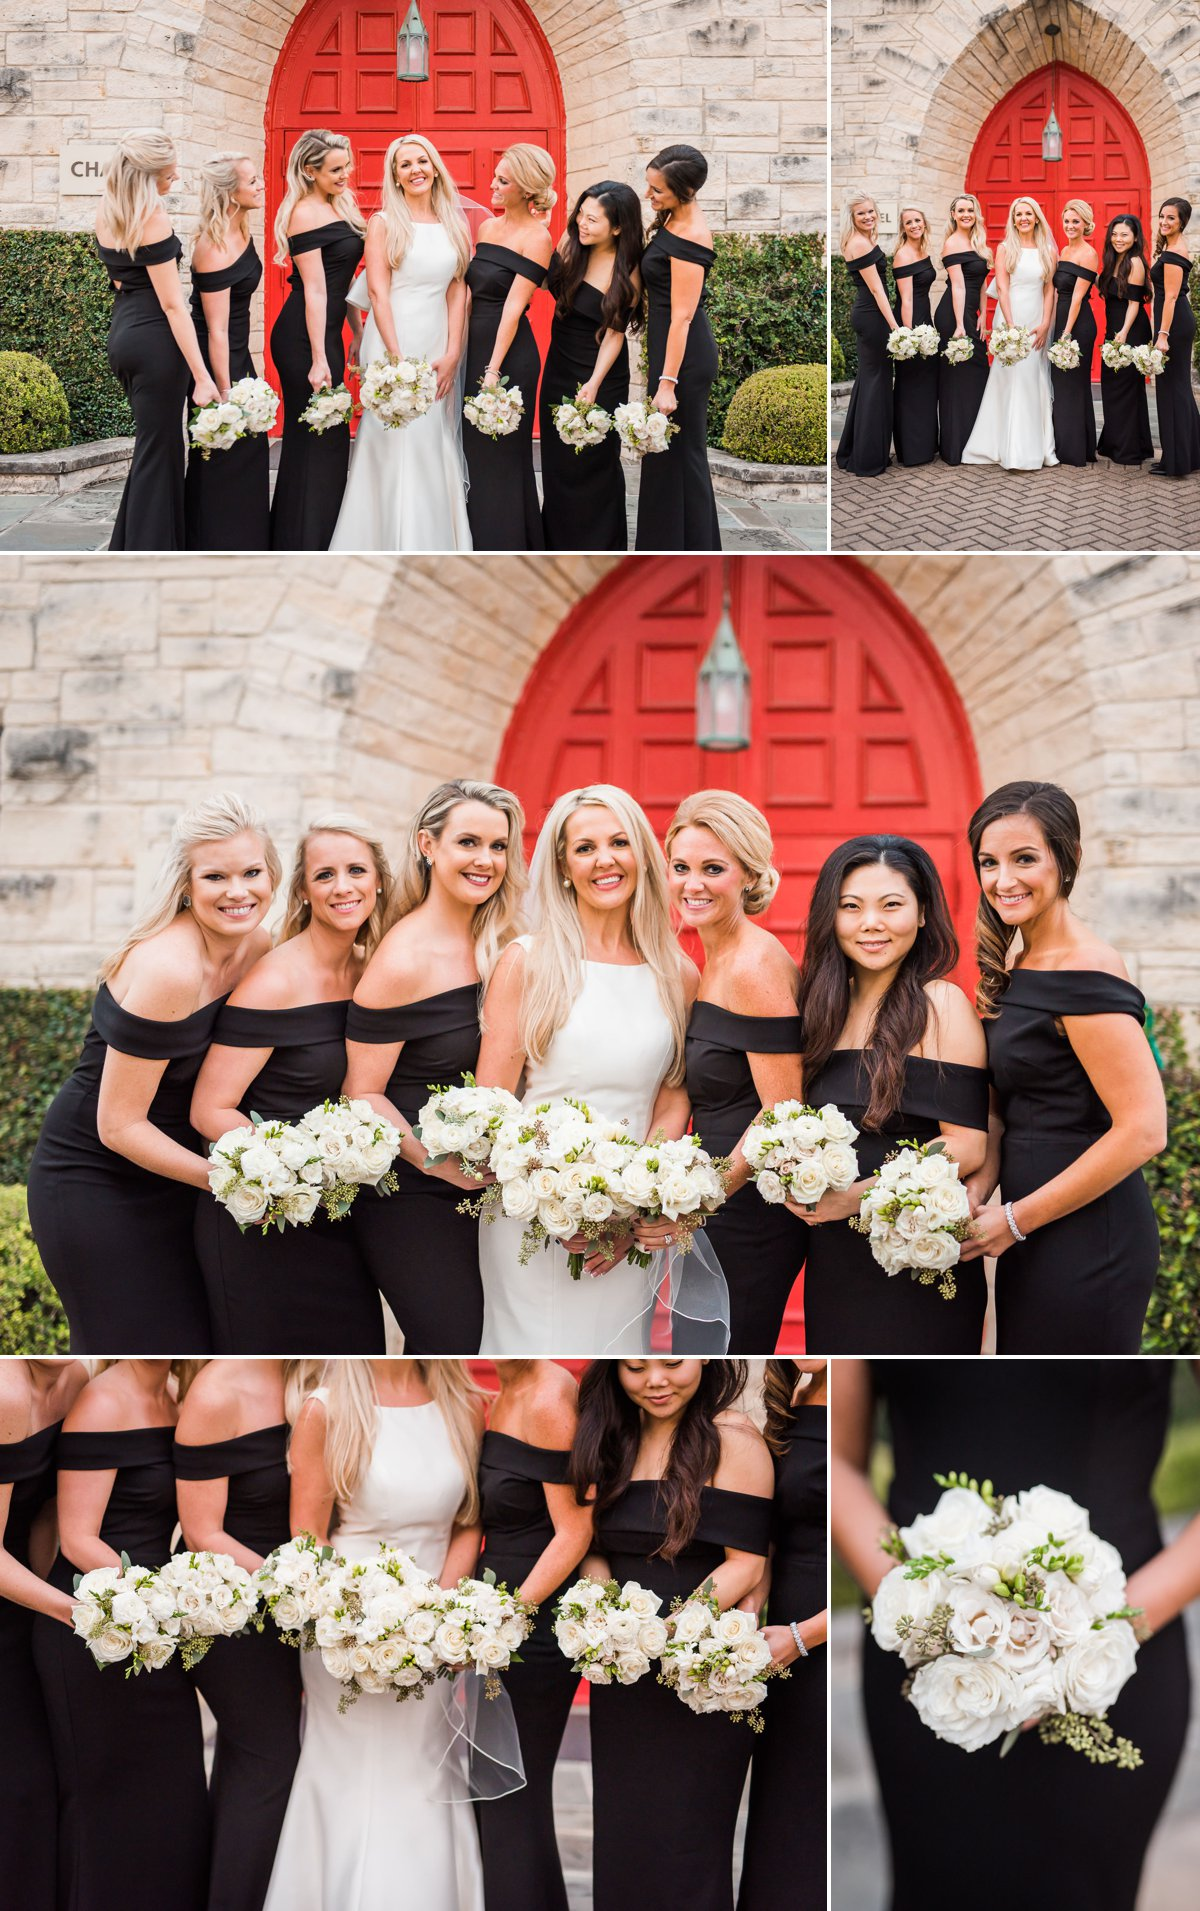 Kaitlyn River Oaks Bride Bridal photo by Nate Messarra